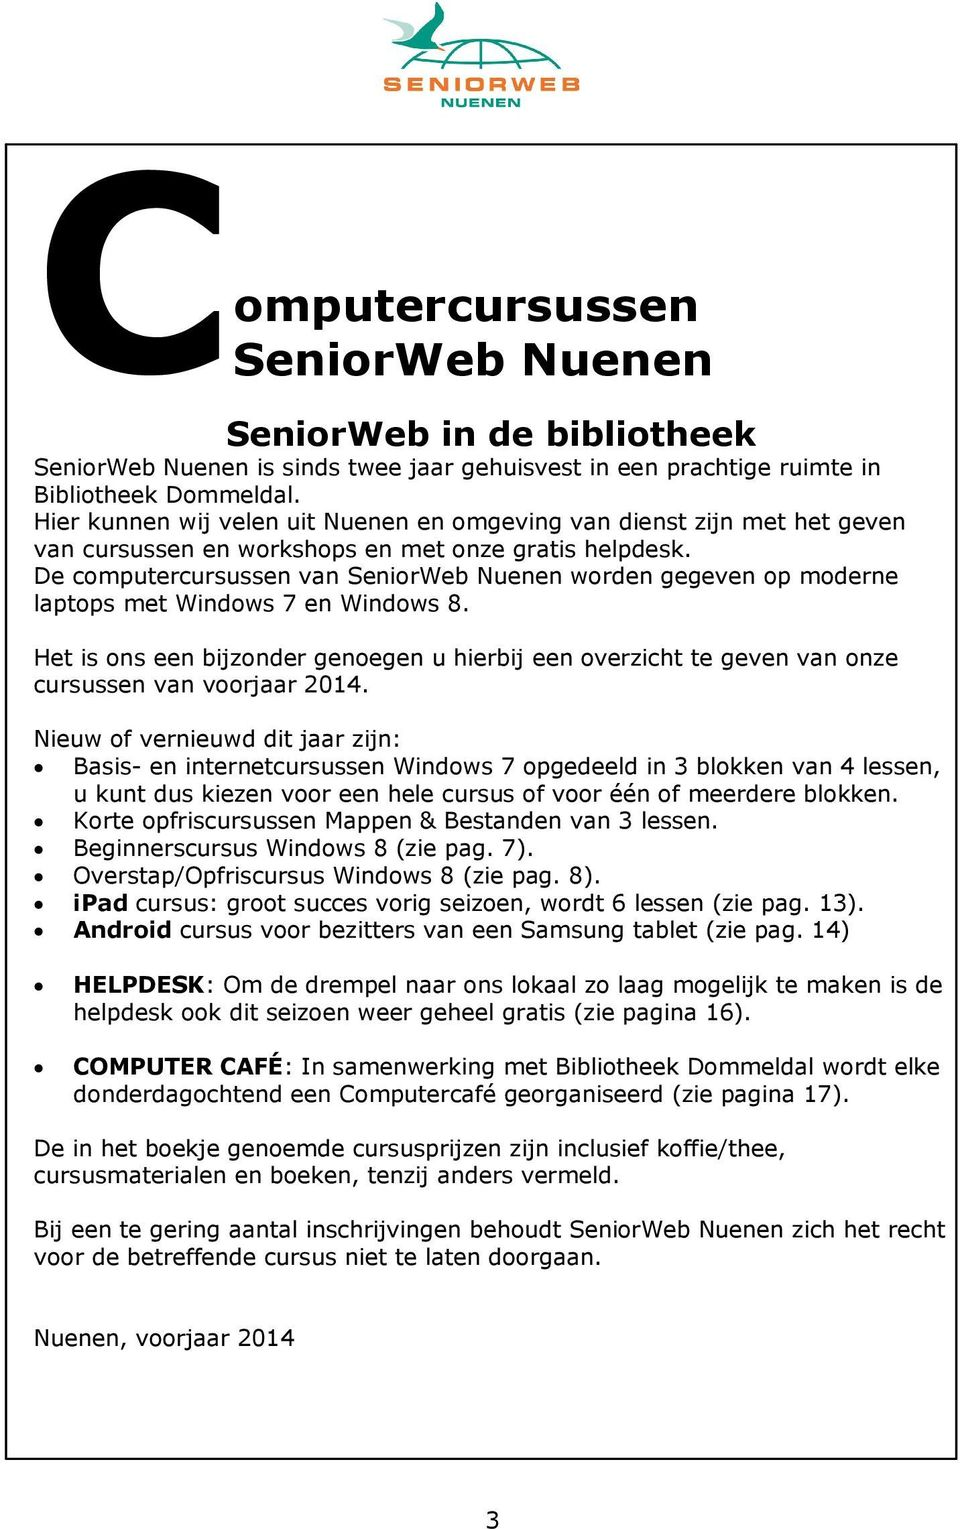 De computercursussen van SeniorWeb Nuenen worden gegeven op moderne laptops met Windows 7 en Windows 8.